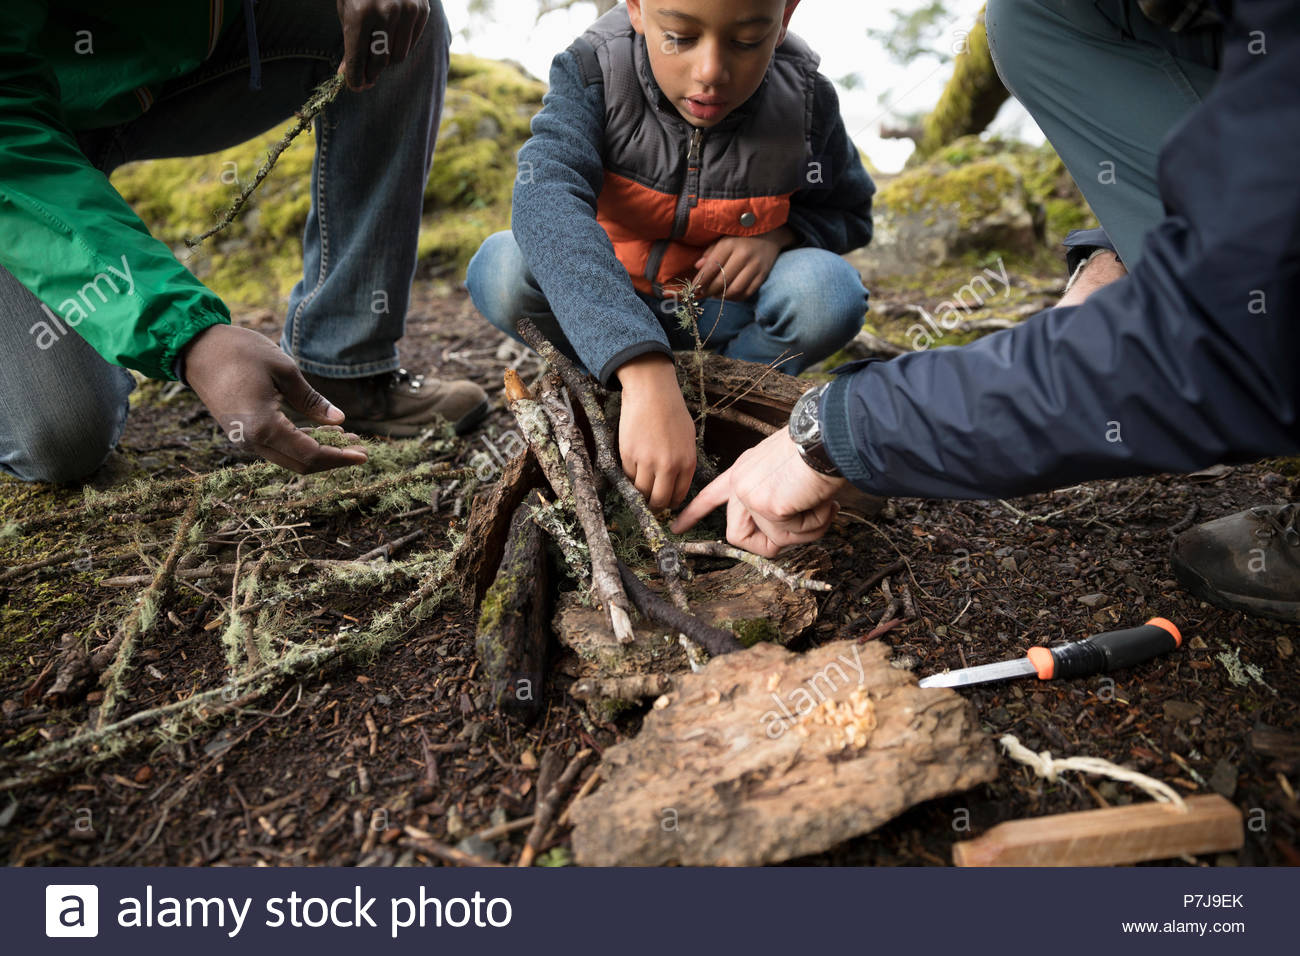 Trail guide and father helping boy build a fire in woods - Stock Image